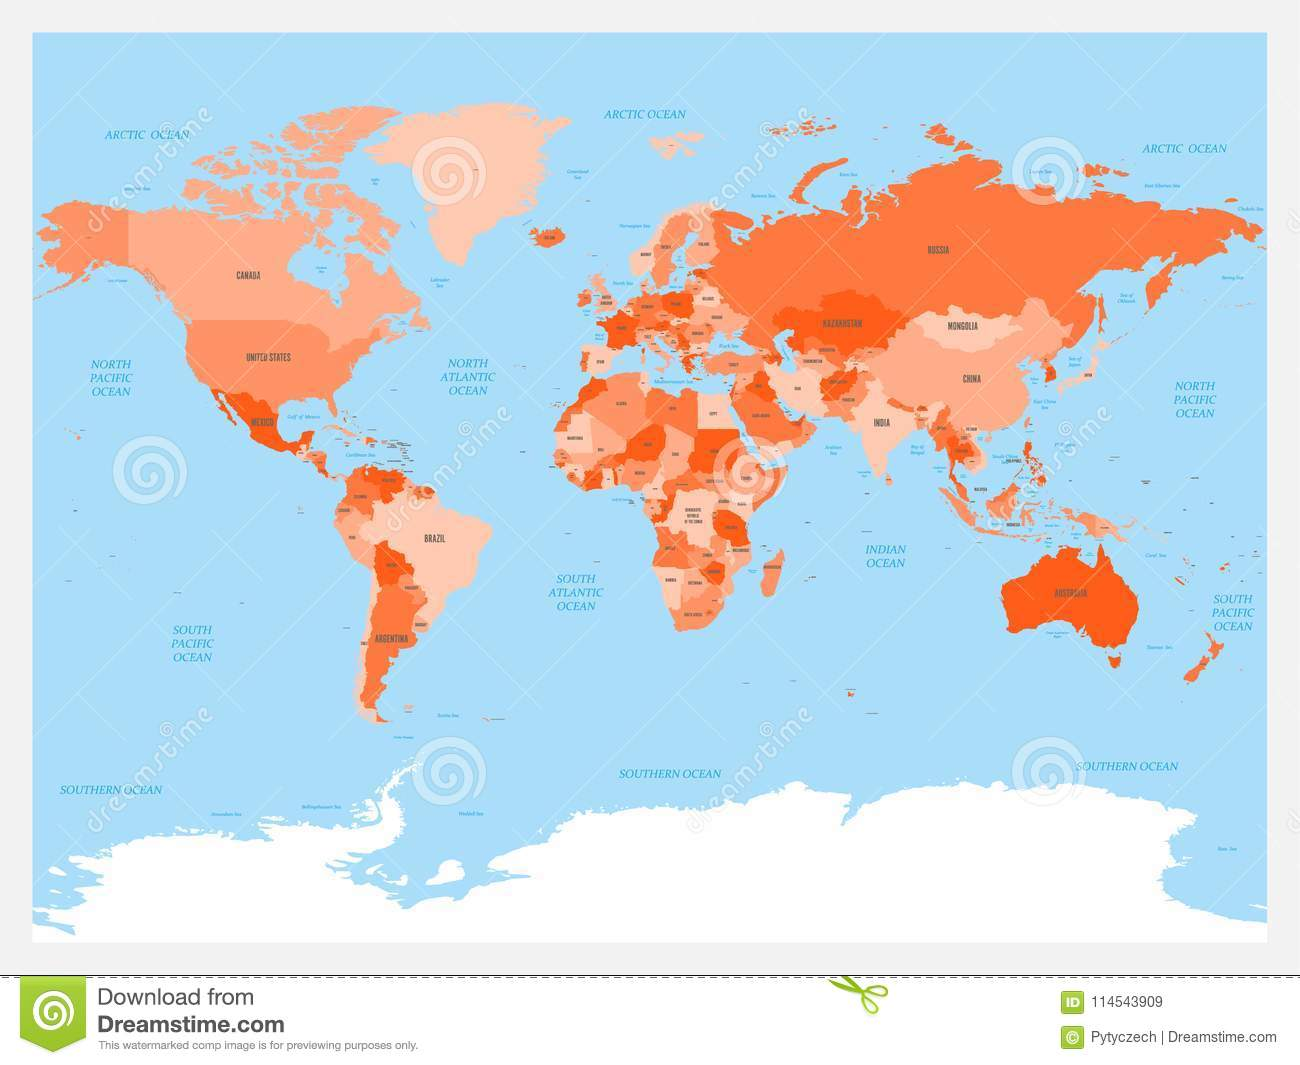 World map atlas red colored political map with blue seas and oceans download world map atlas red colored political map with blue seas and oceans vector gumiabroncs Image collections